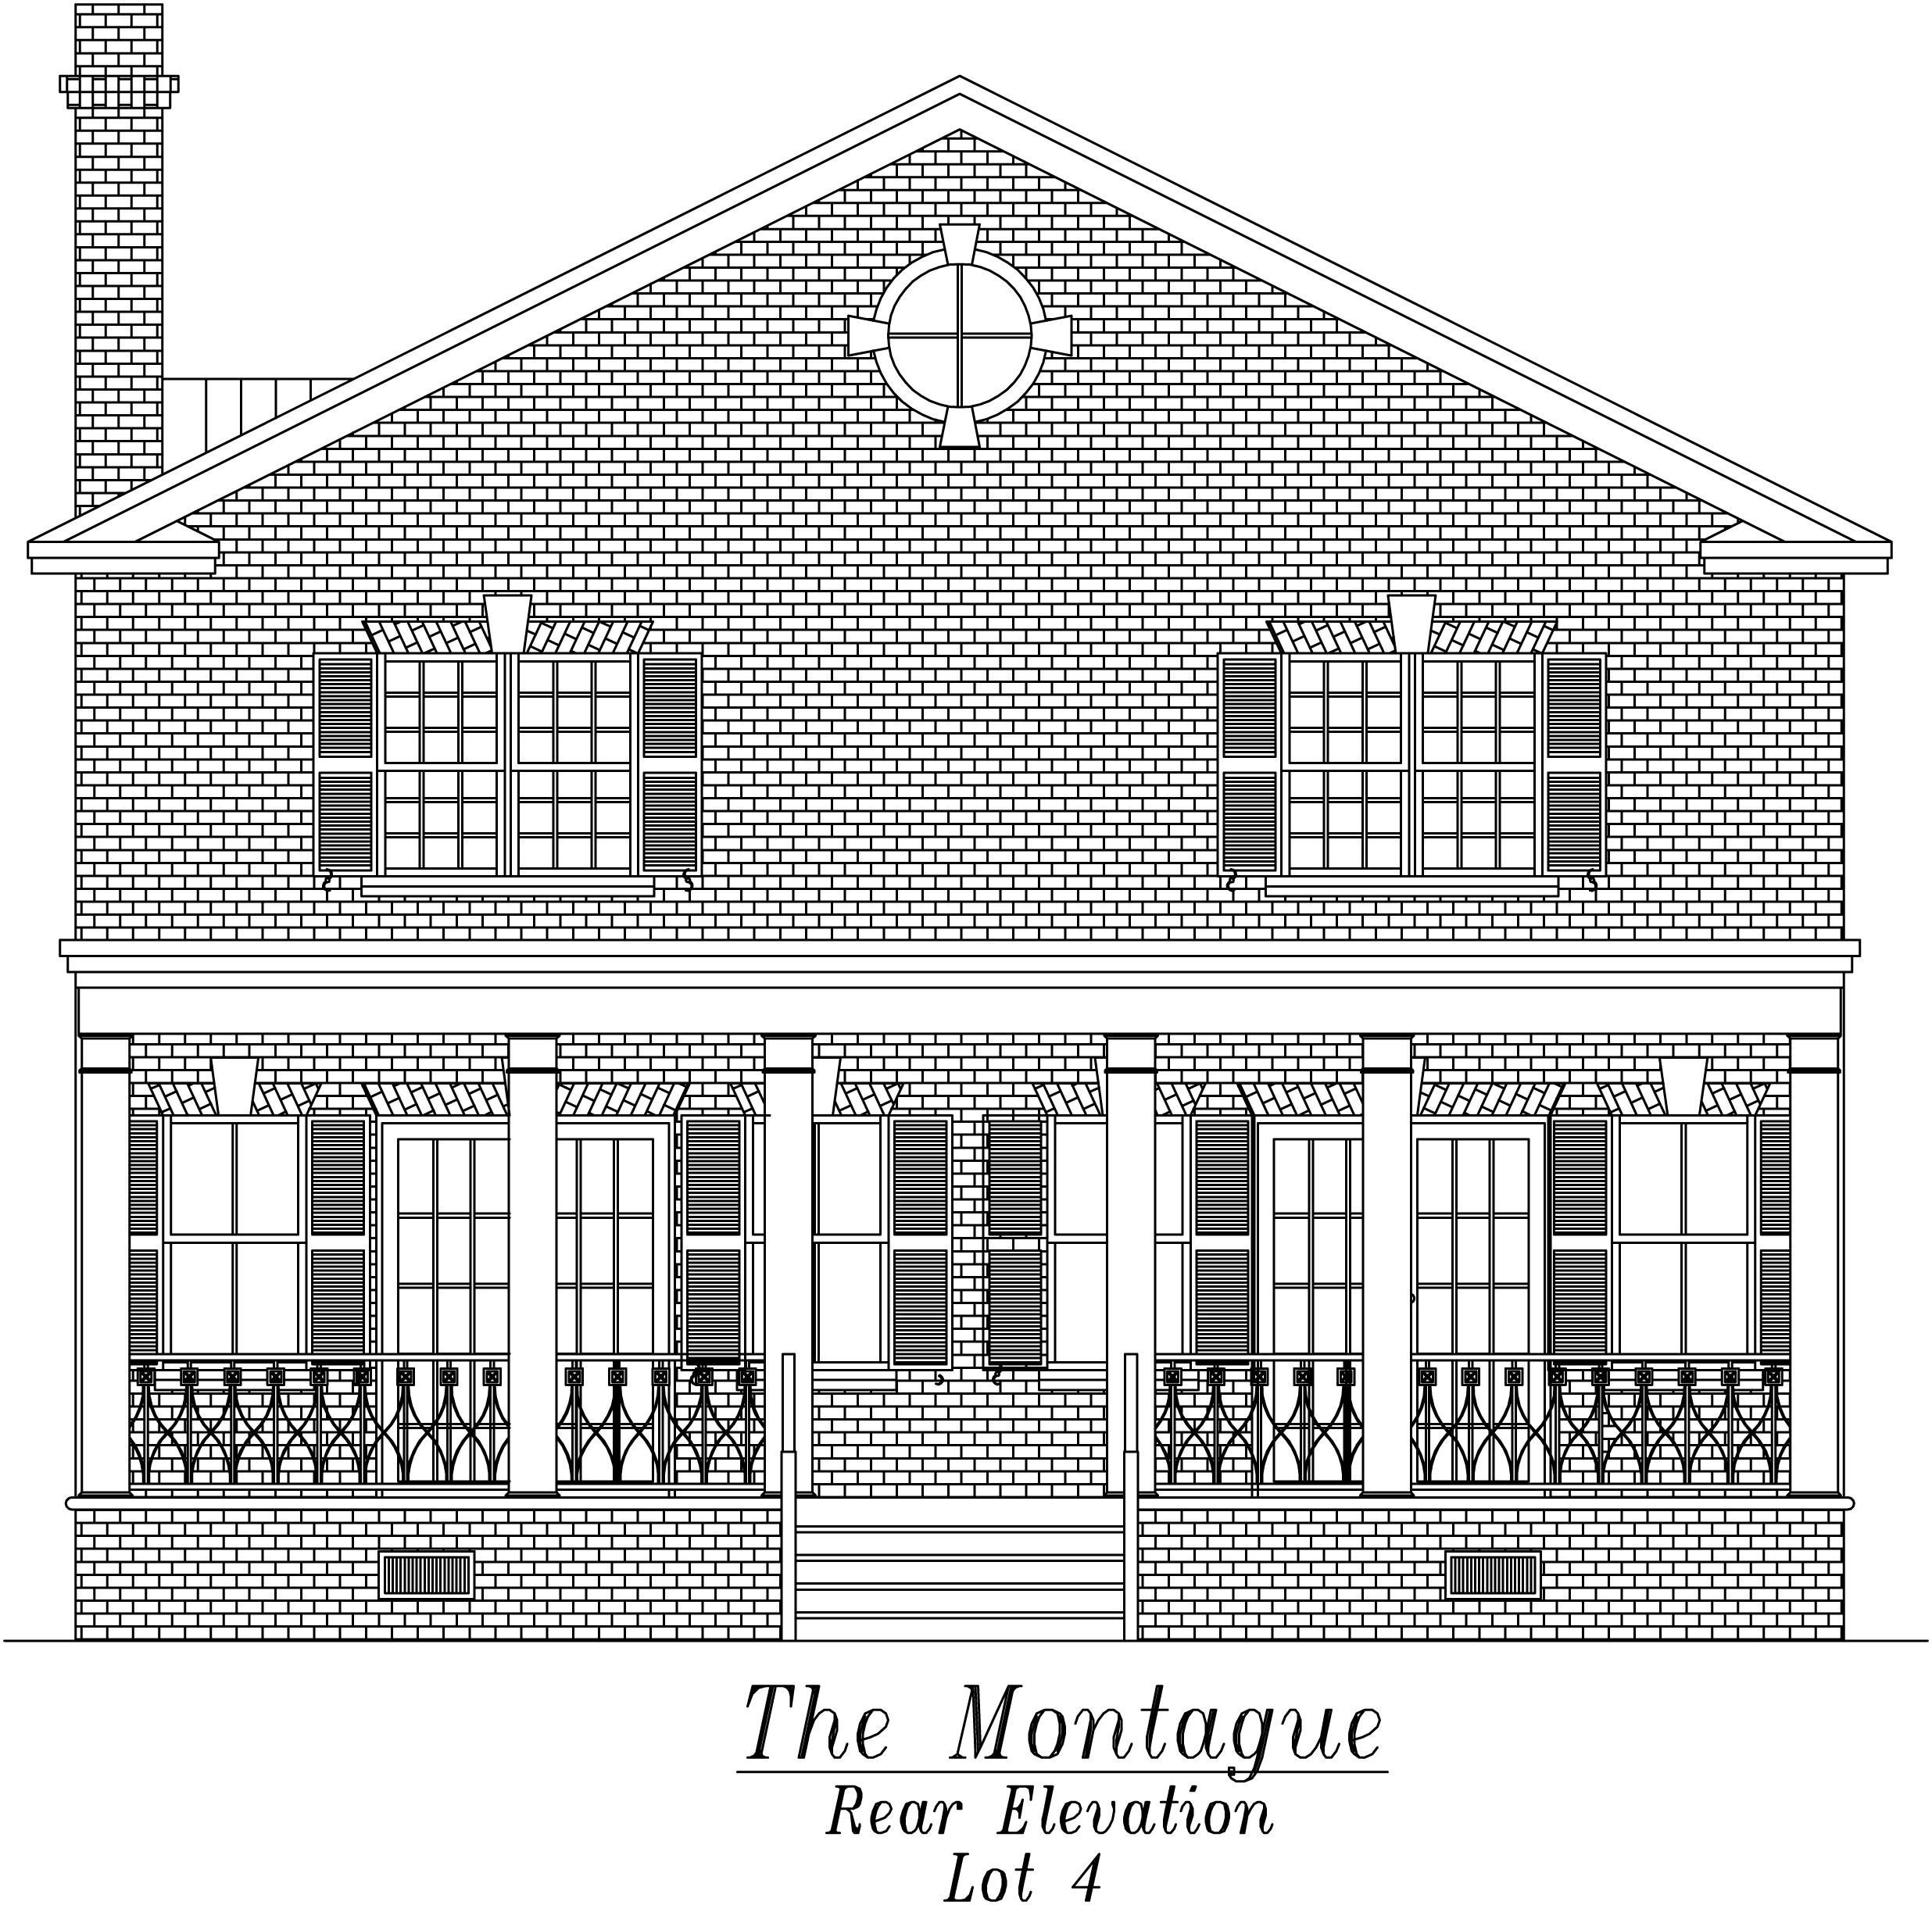 Montague Rear Elevation